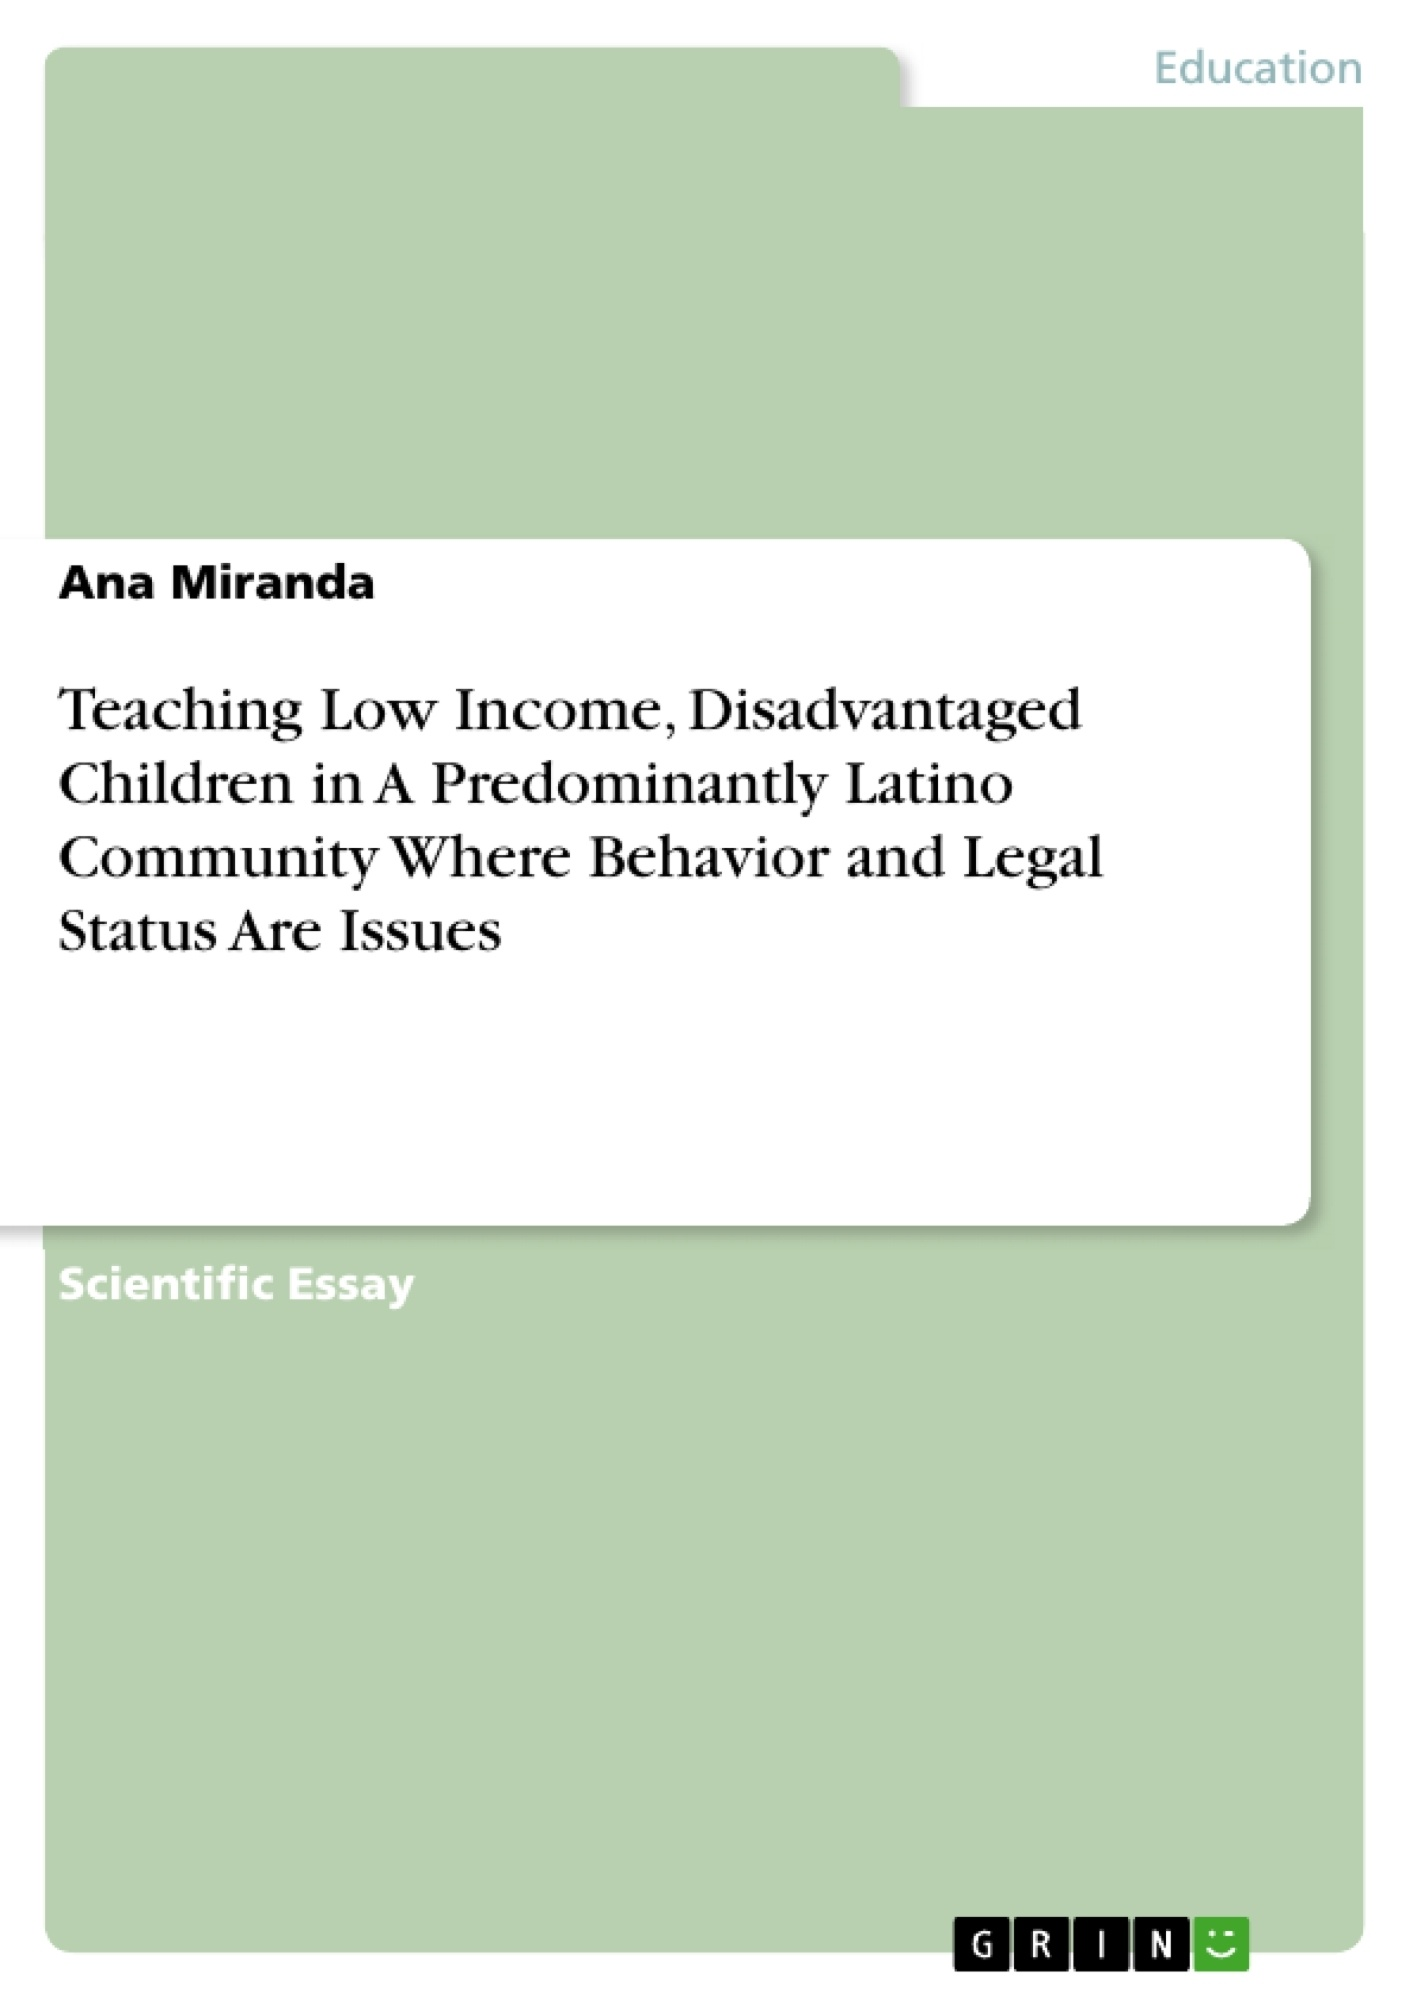 Title: Teaching Low Income, Disadvantaged Children in A Predominantly Latino Community Where Behavior and Legal Status Are Issues